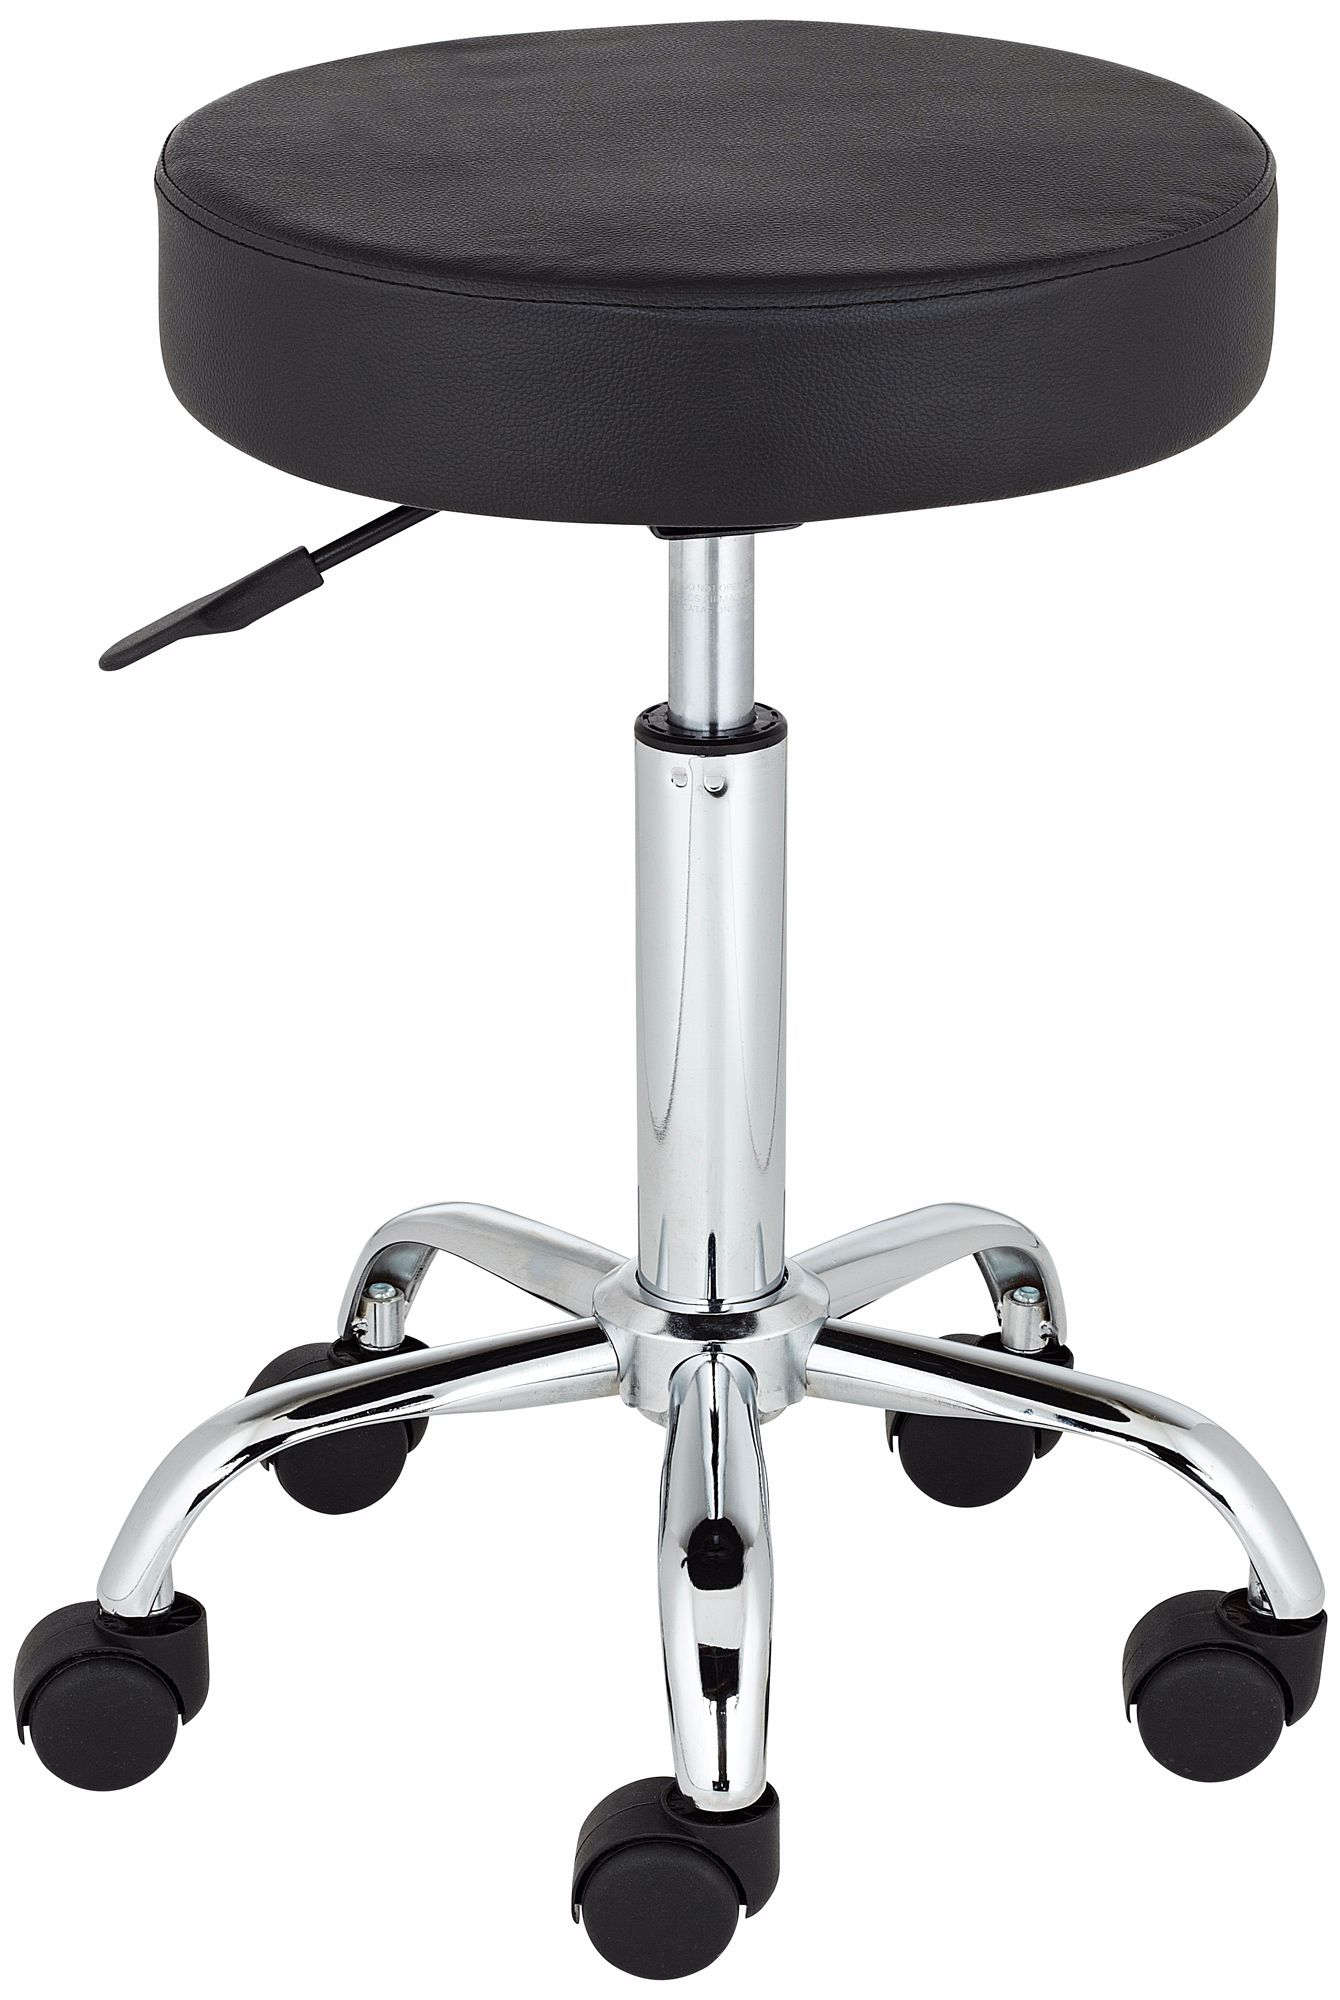 Kelly Rolling Chrome and Black Adjustable Height Stool  sc 1 st  L&s Plus & Kelly Rolling Chrome and Black Adjustable Height Stool - #U5851 ... islam-shia.org